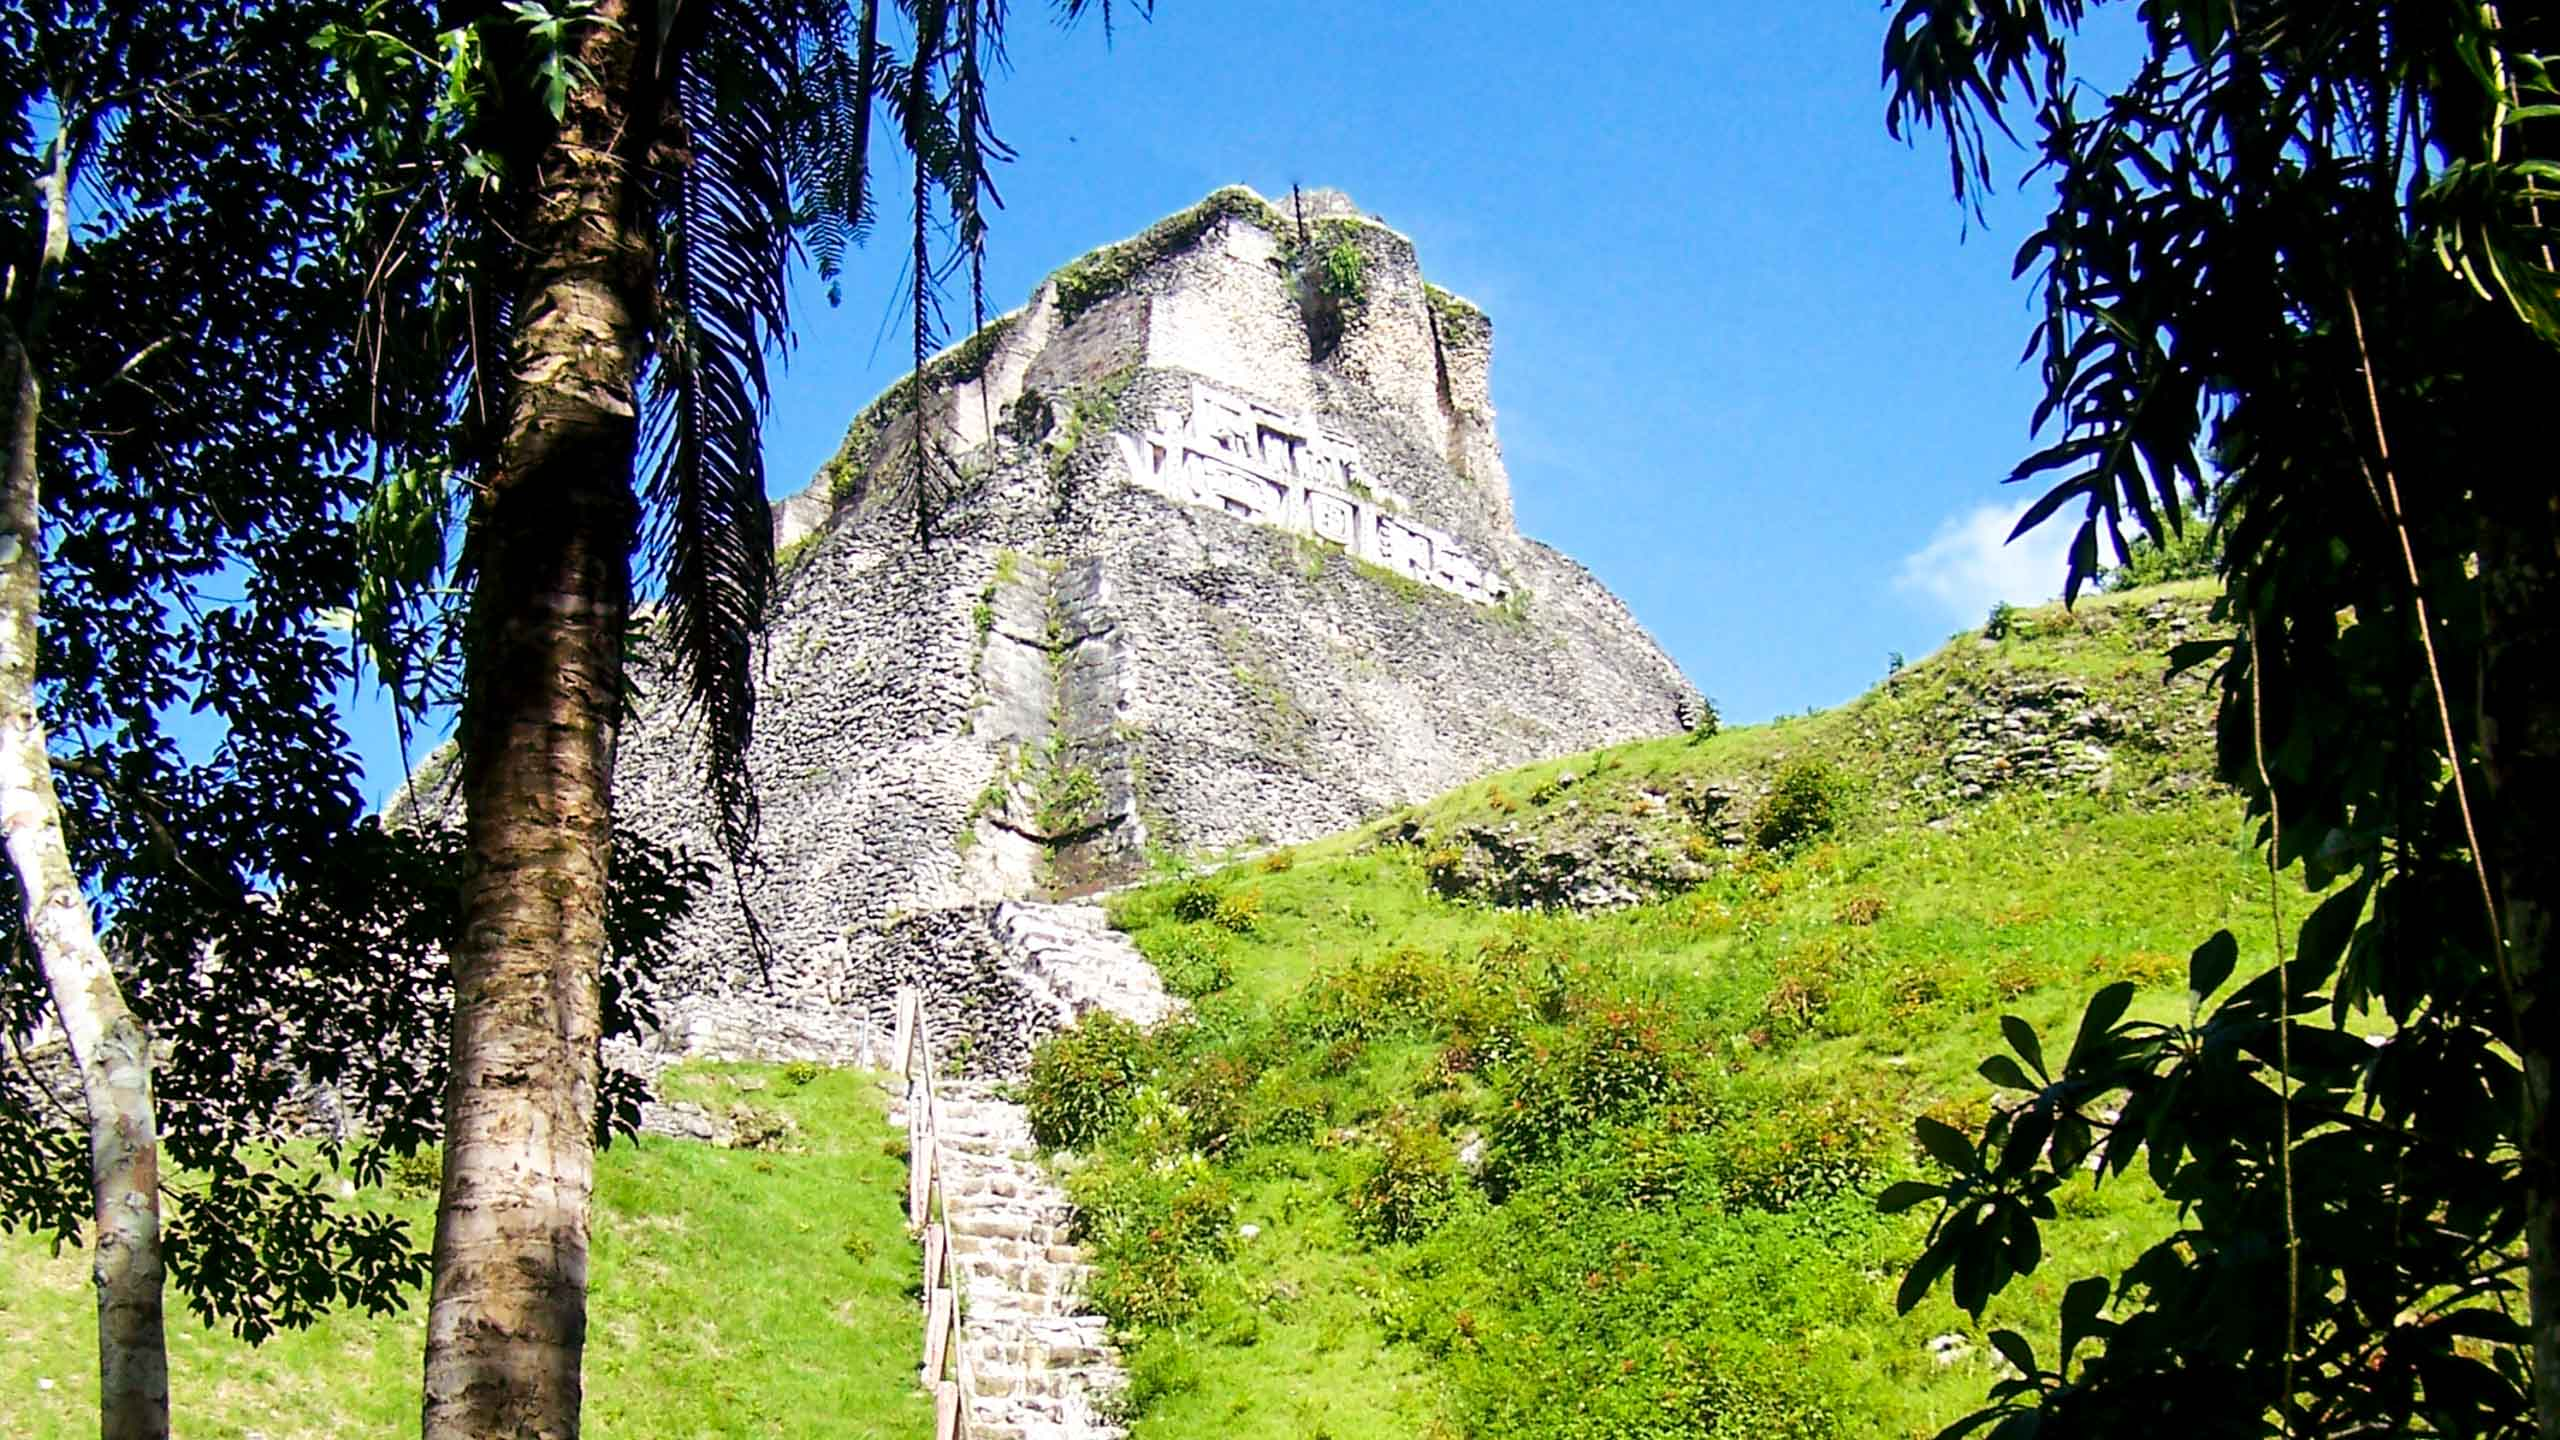 Belize temple ruins